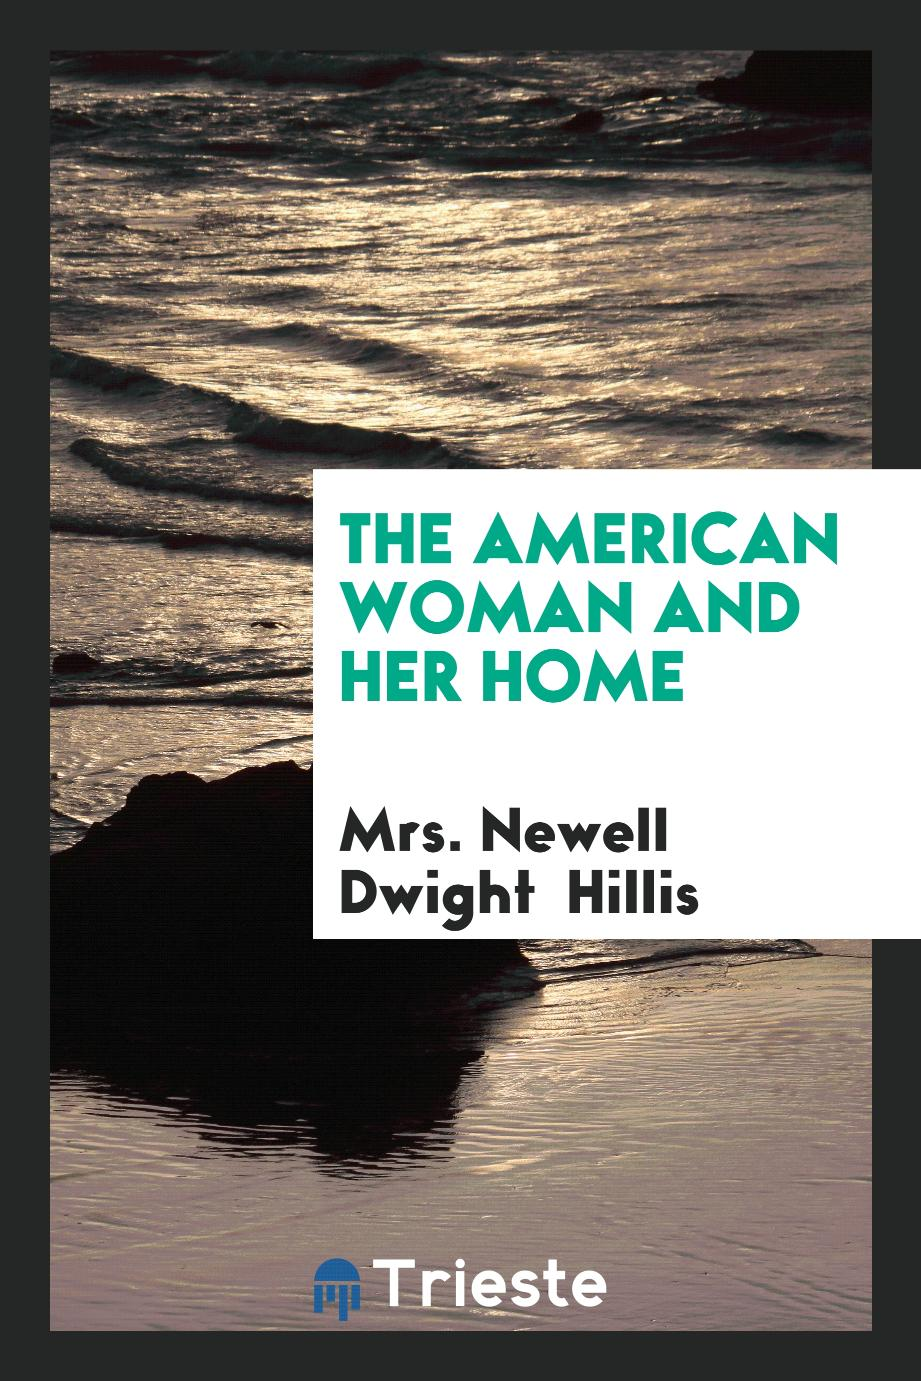 The American Woman and Her Home